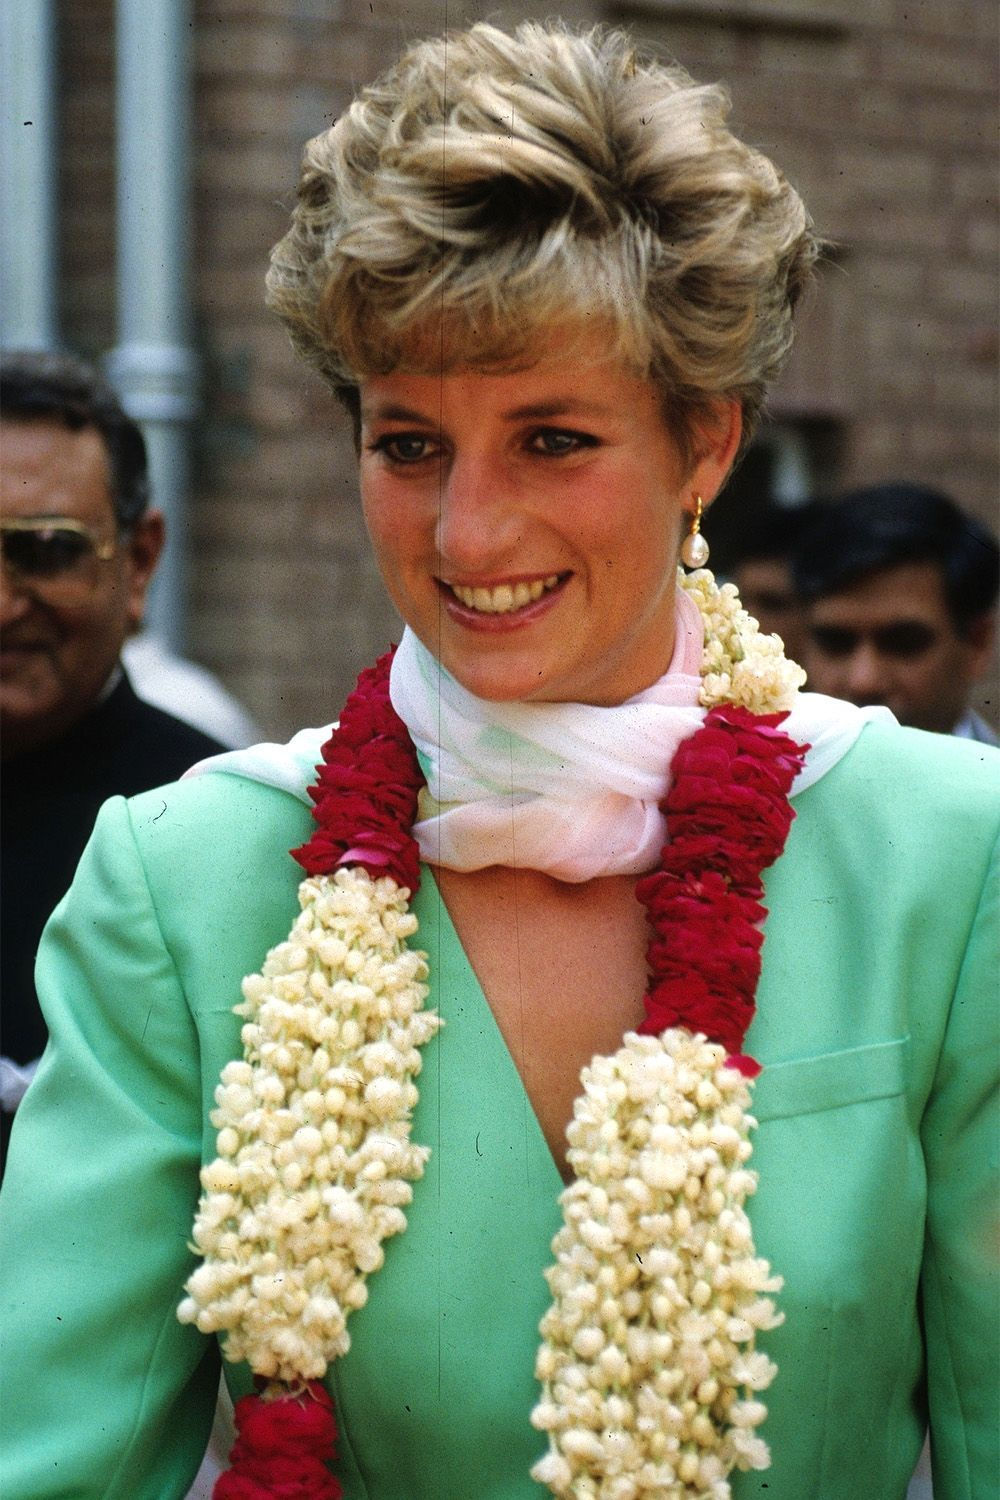 50 of princess diana's best hairstyles | princess diana hairstyles